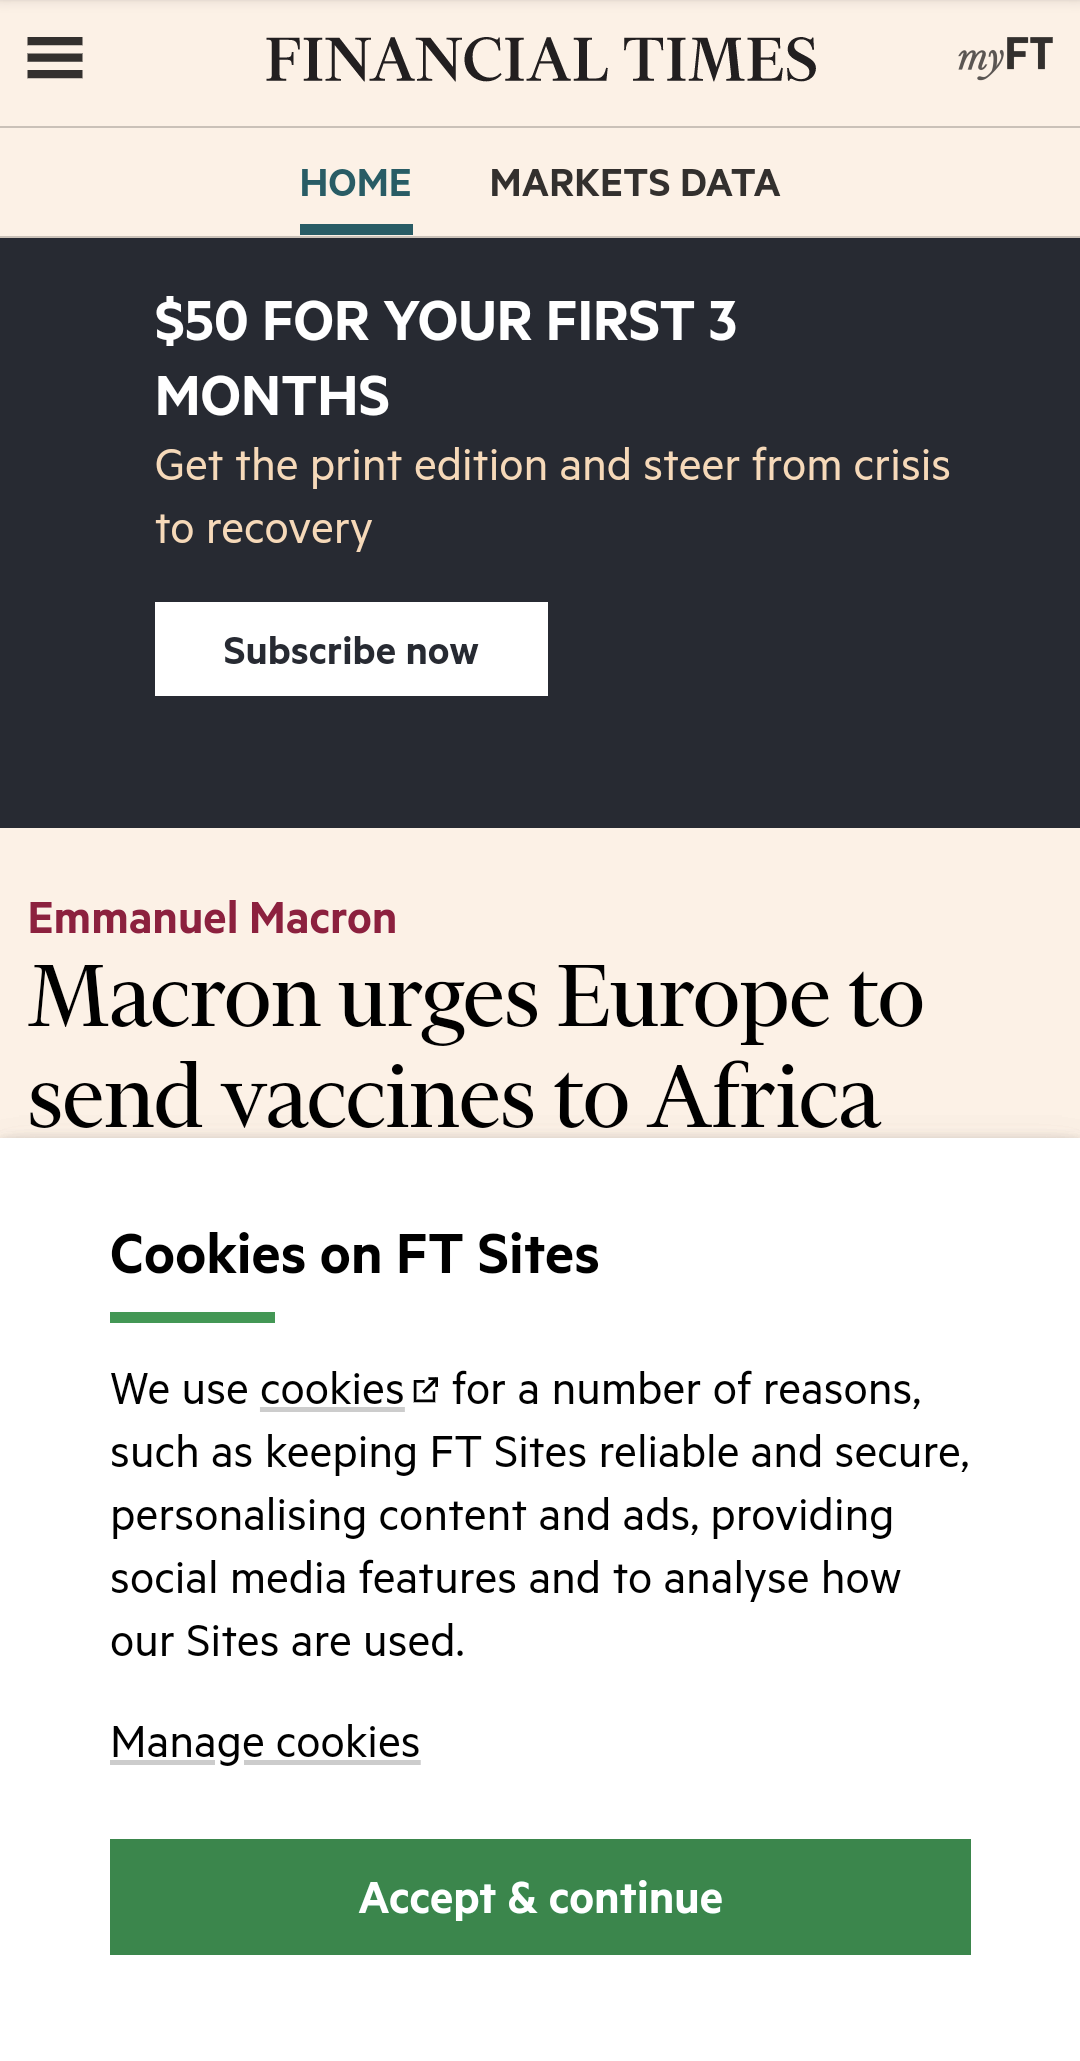 A cookie banner on the Financial Times taking up about half the screen